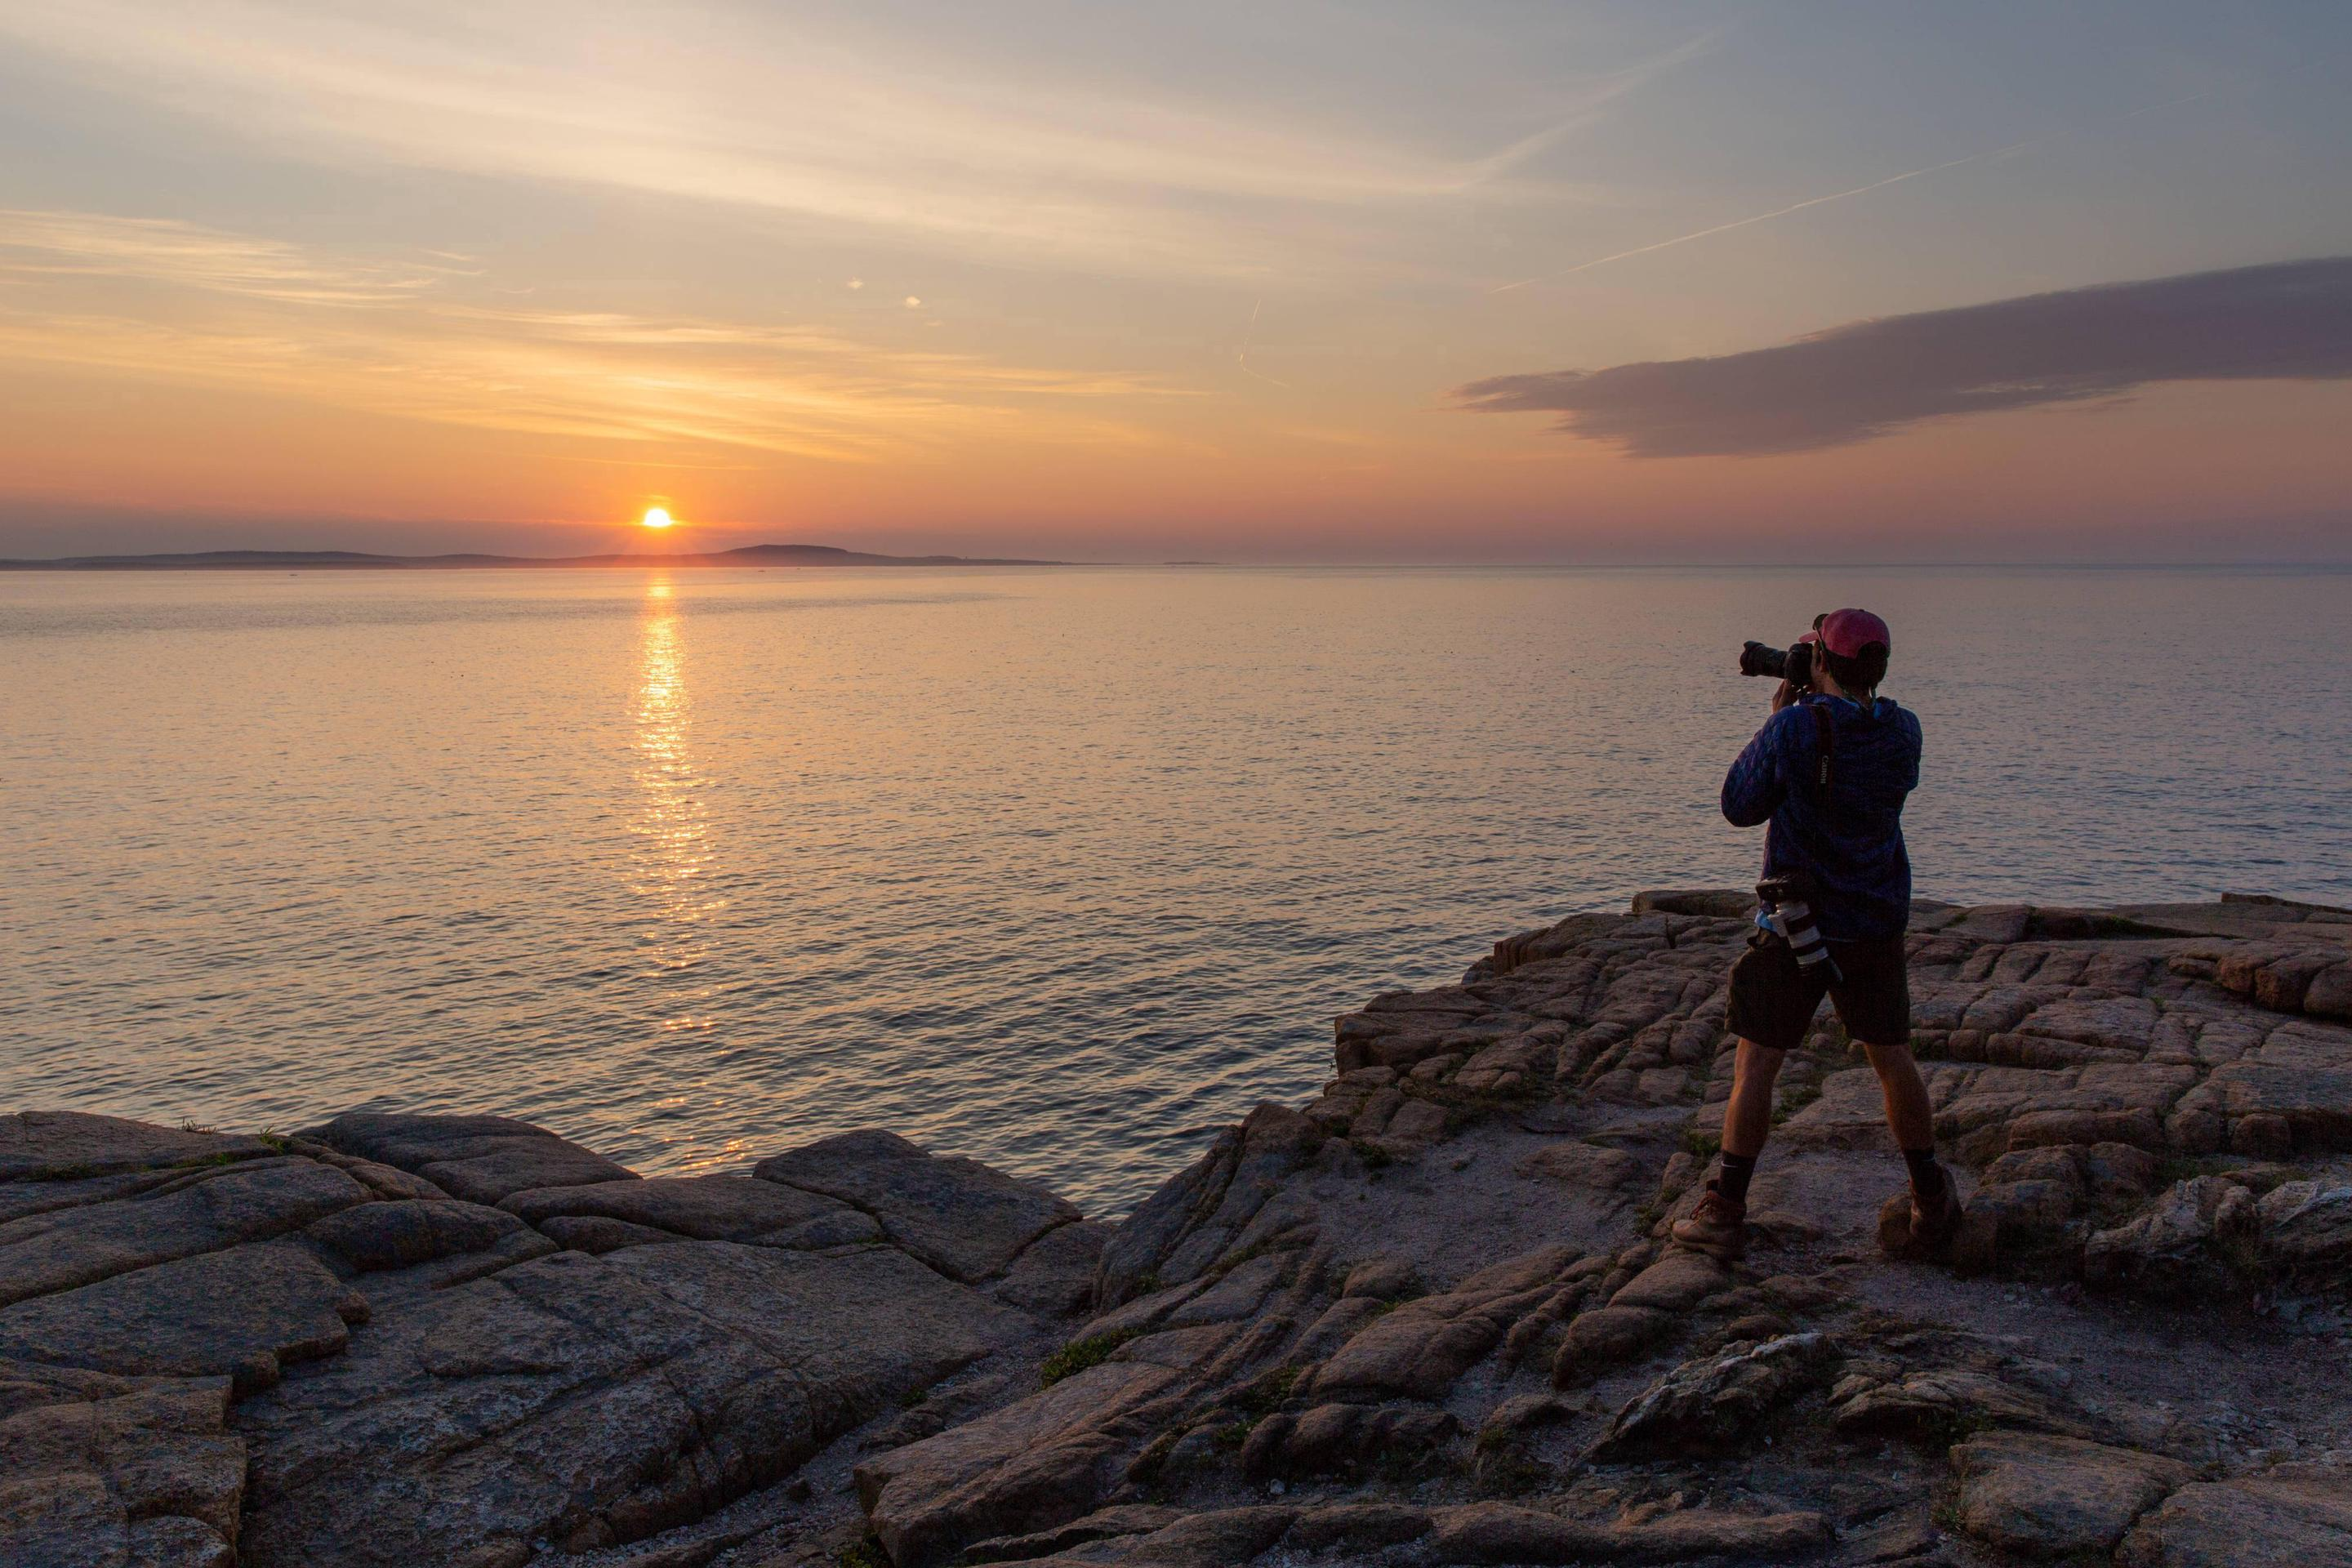 Man standing on rocky coastline takes a photo of sunrise Sunrise at Otter Cliffs